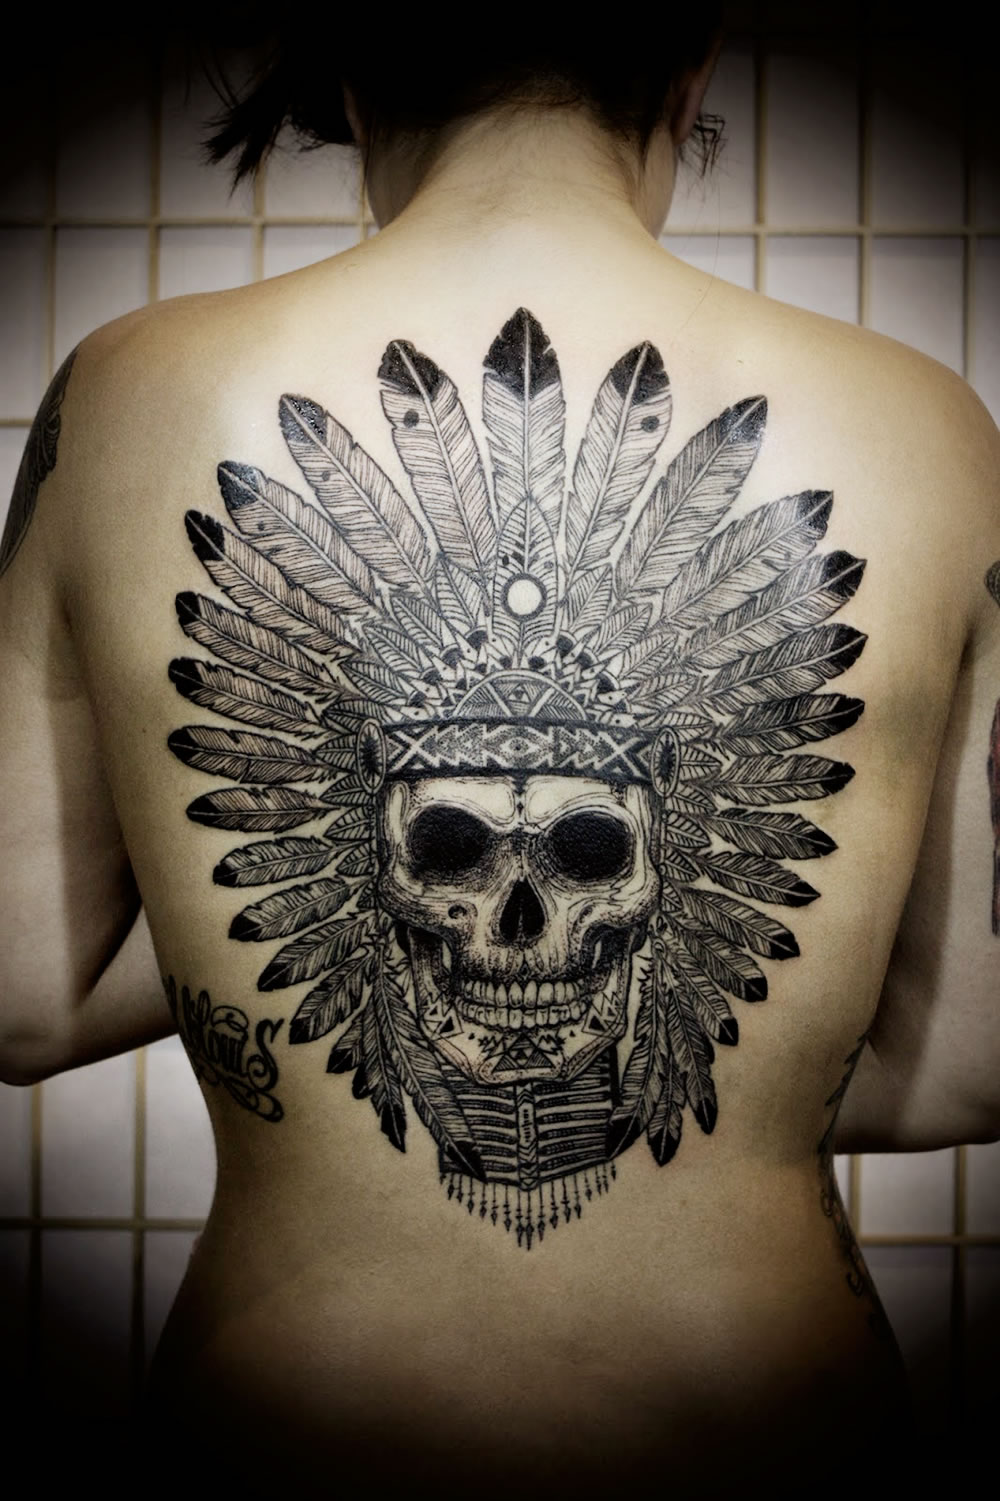 Skull Indian tattoo on back by David Hale